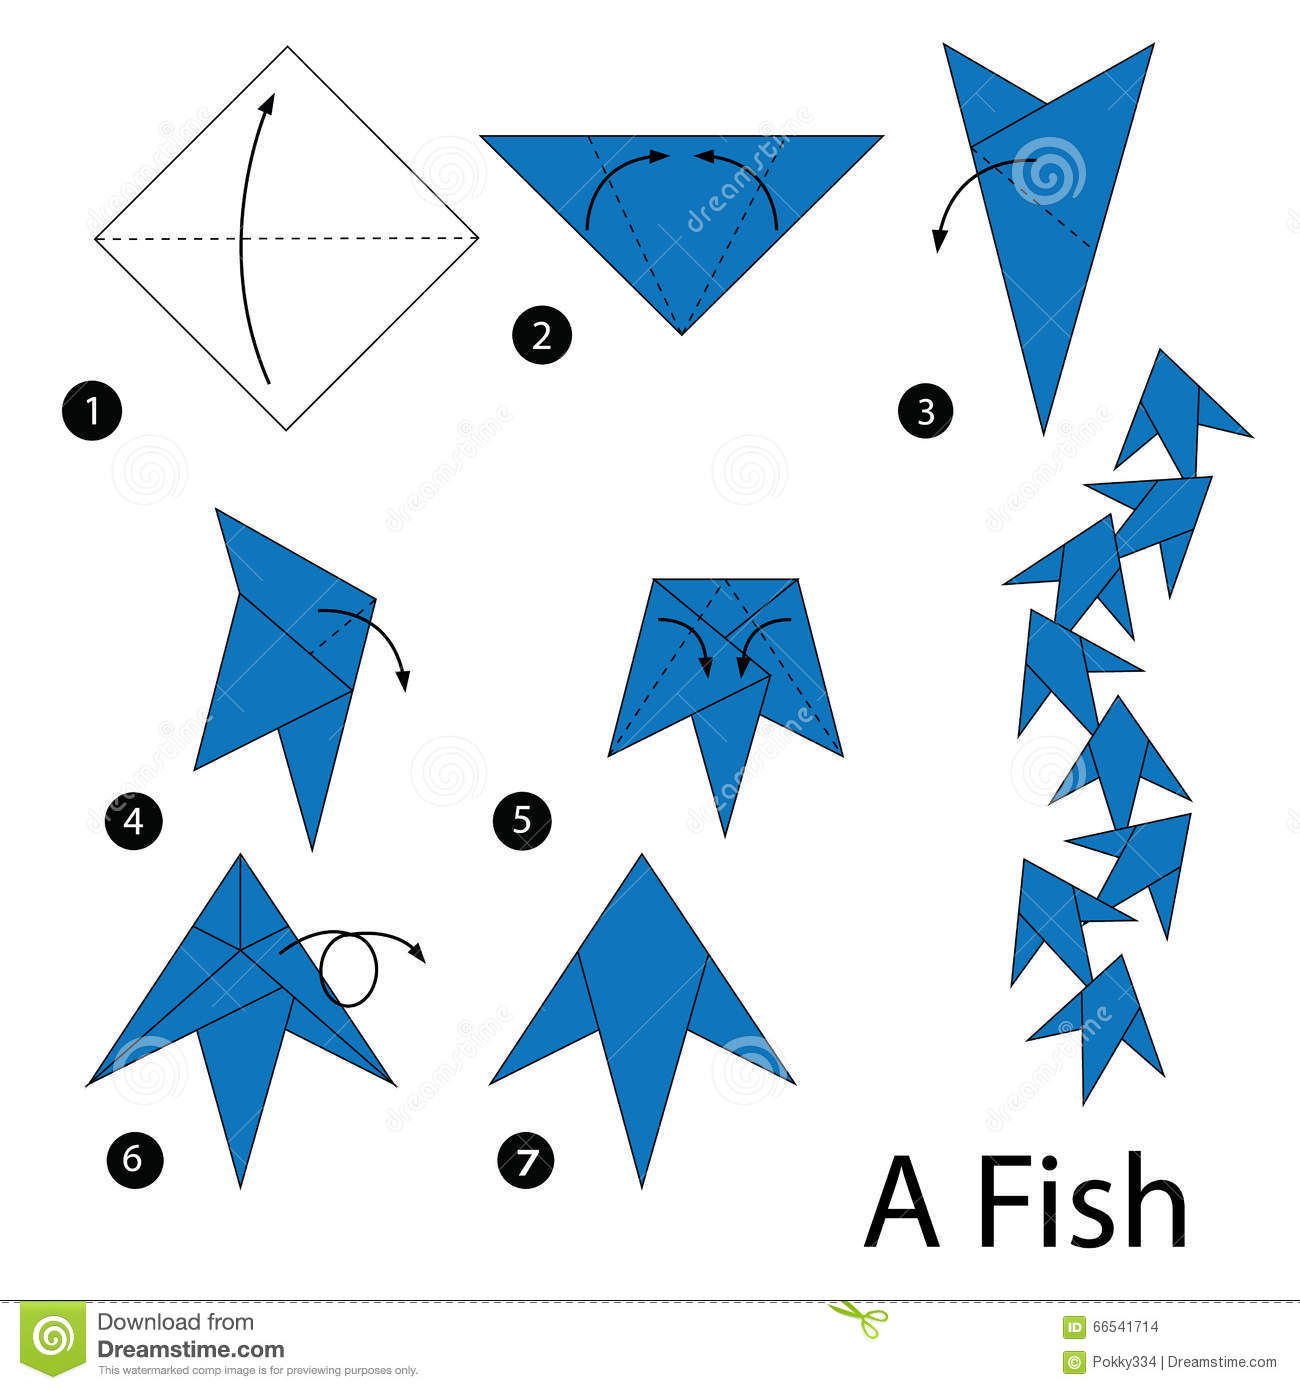 Step by step instructions how to make origami fish stock for Origami fish instructions